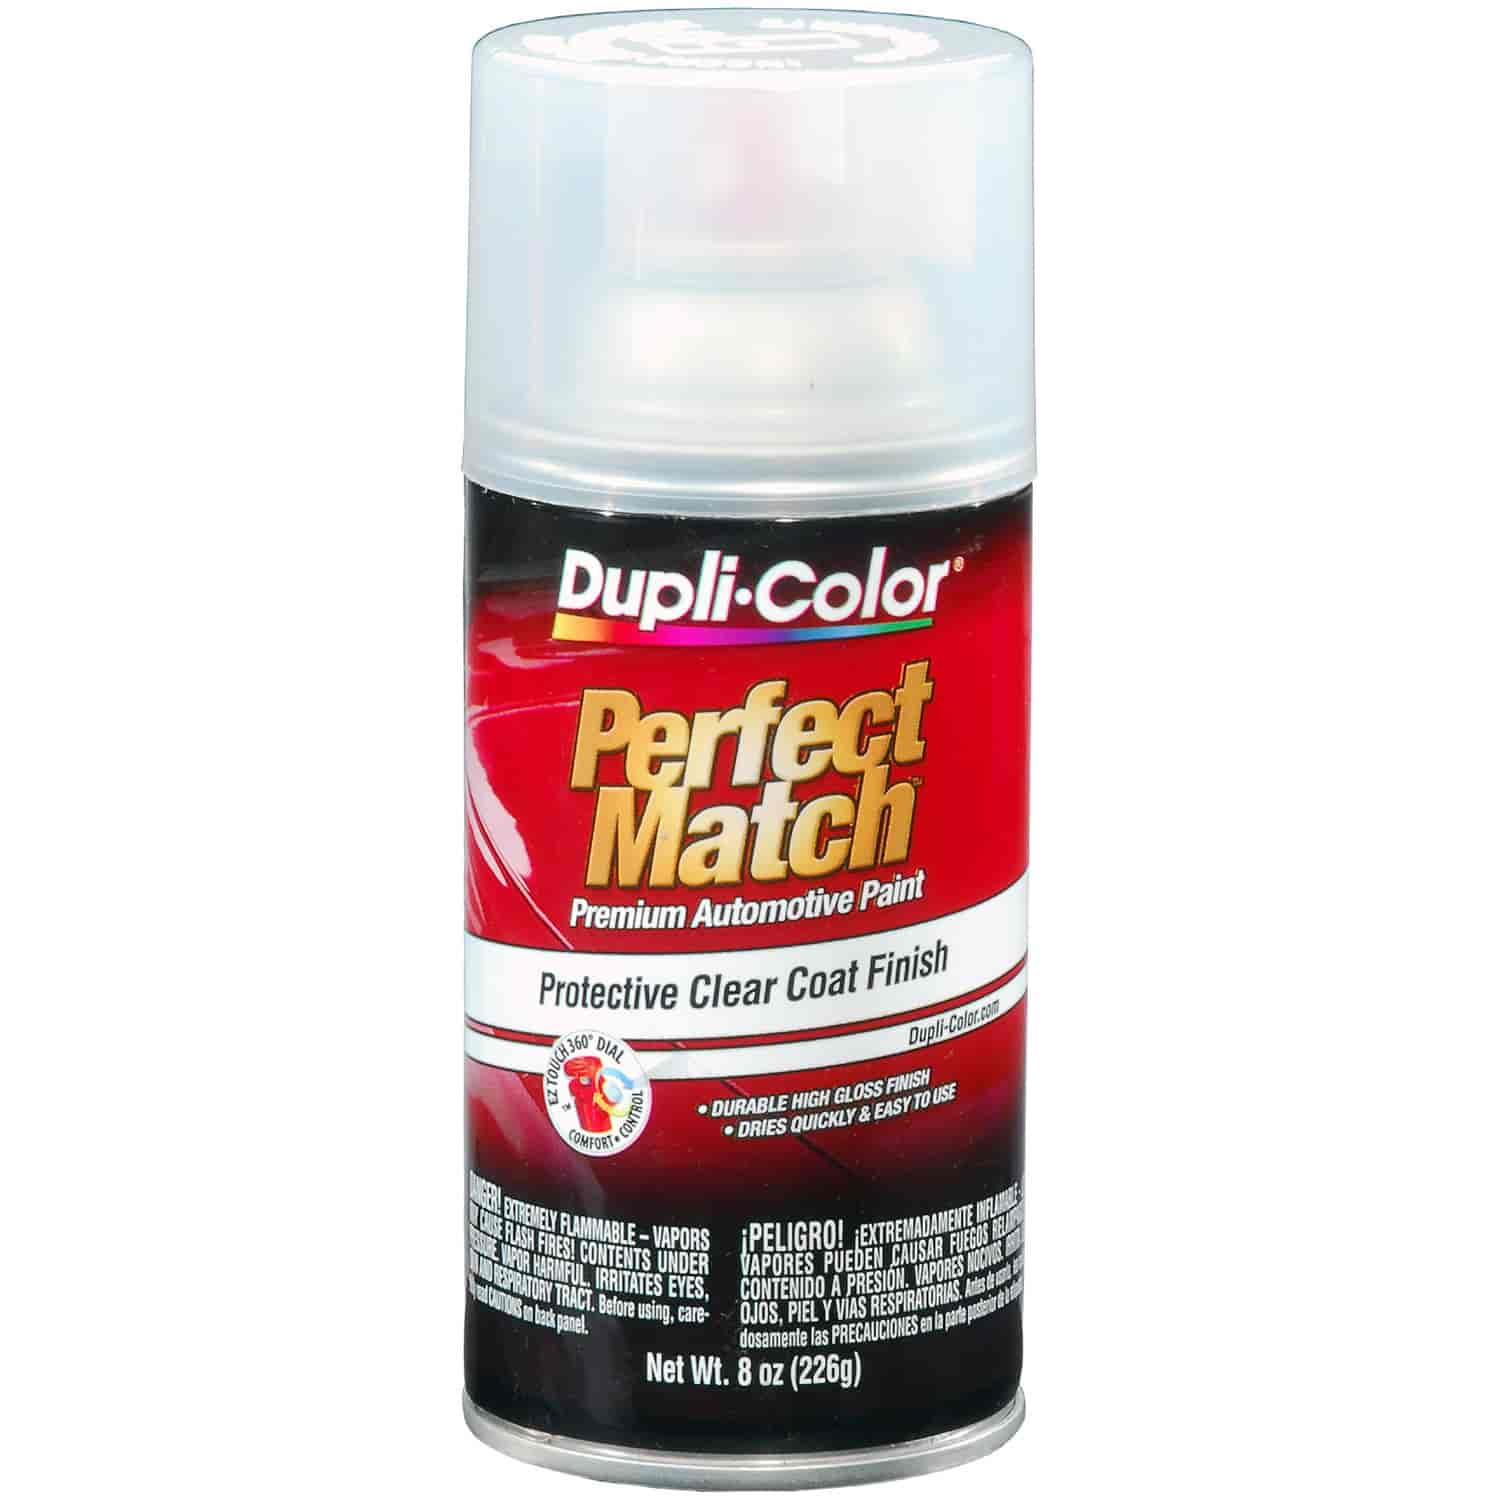 Duplicolor BCL0125 - Duplicolor Perfect Match Touch-Up Paint